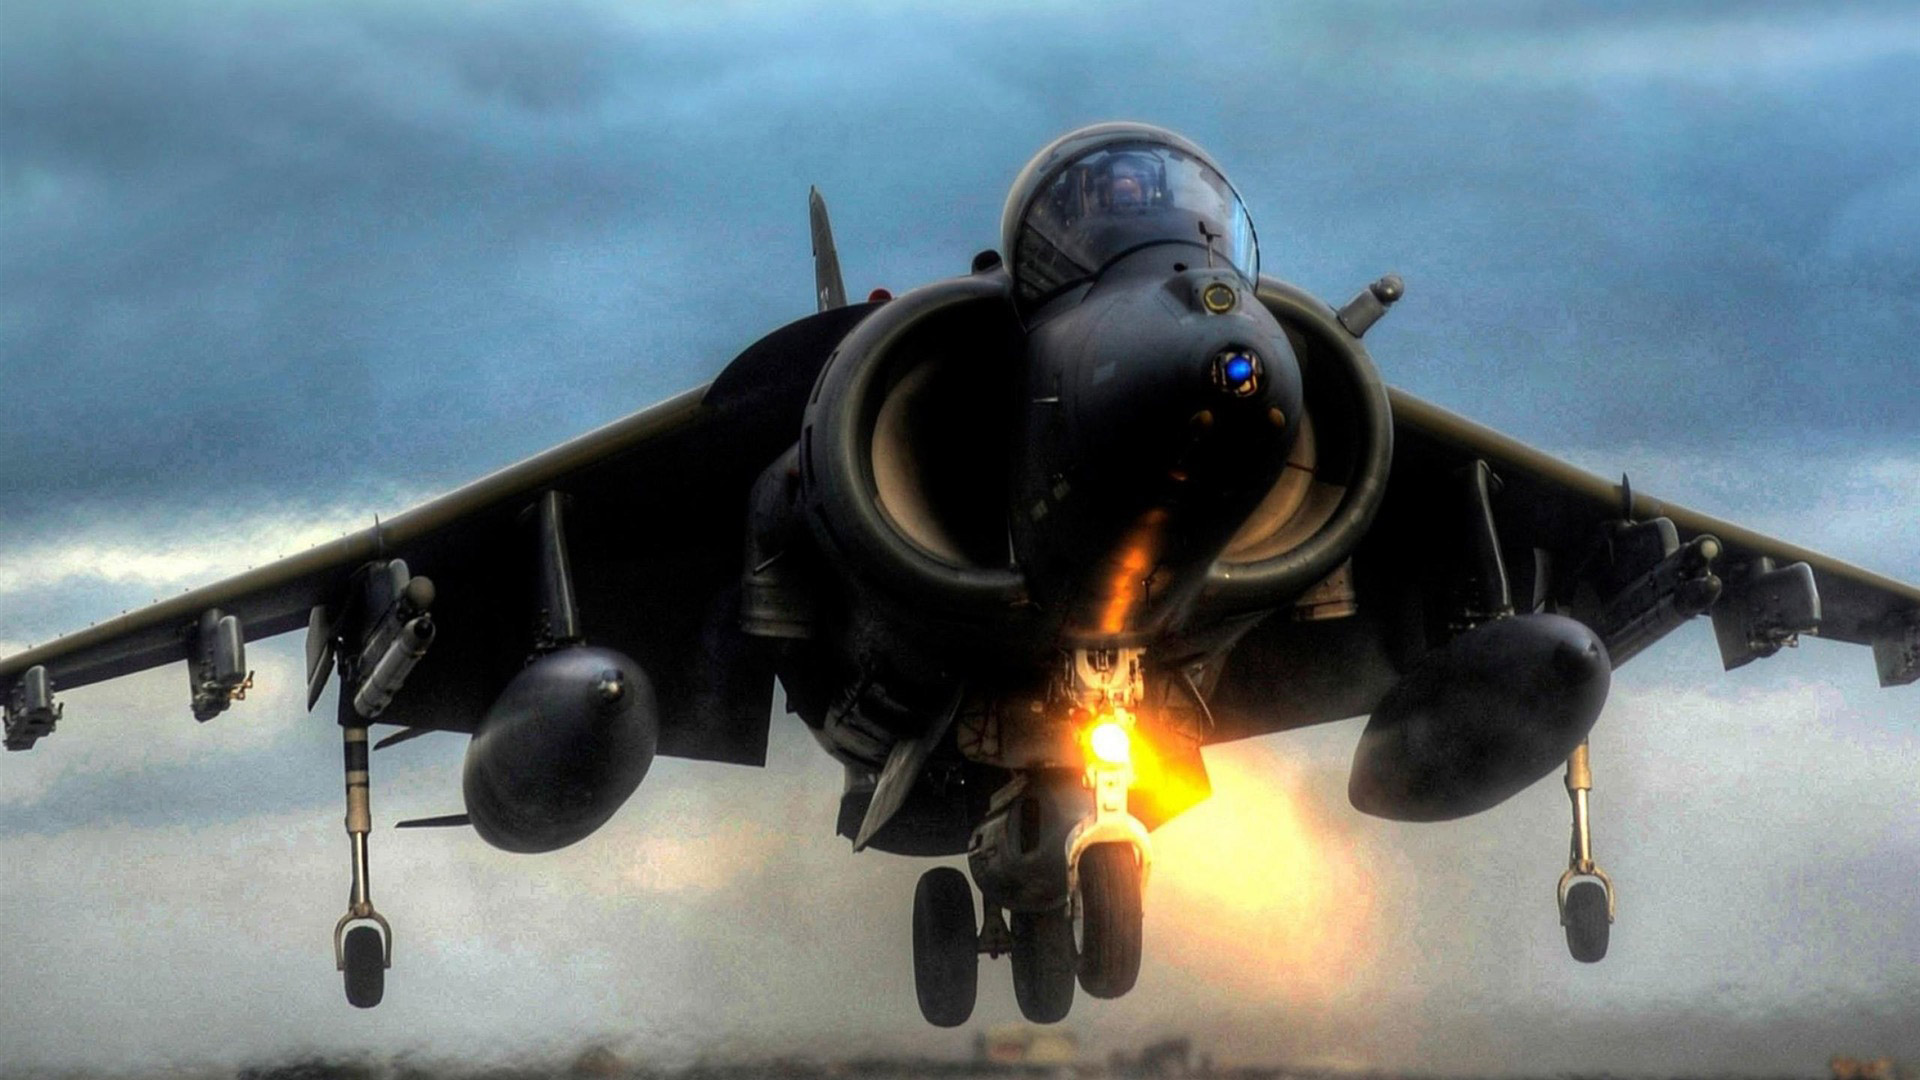 Free Download Fighter Aircraft Hd Wallpaper Wallpapers55com